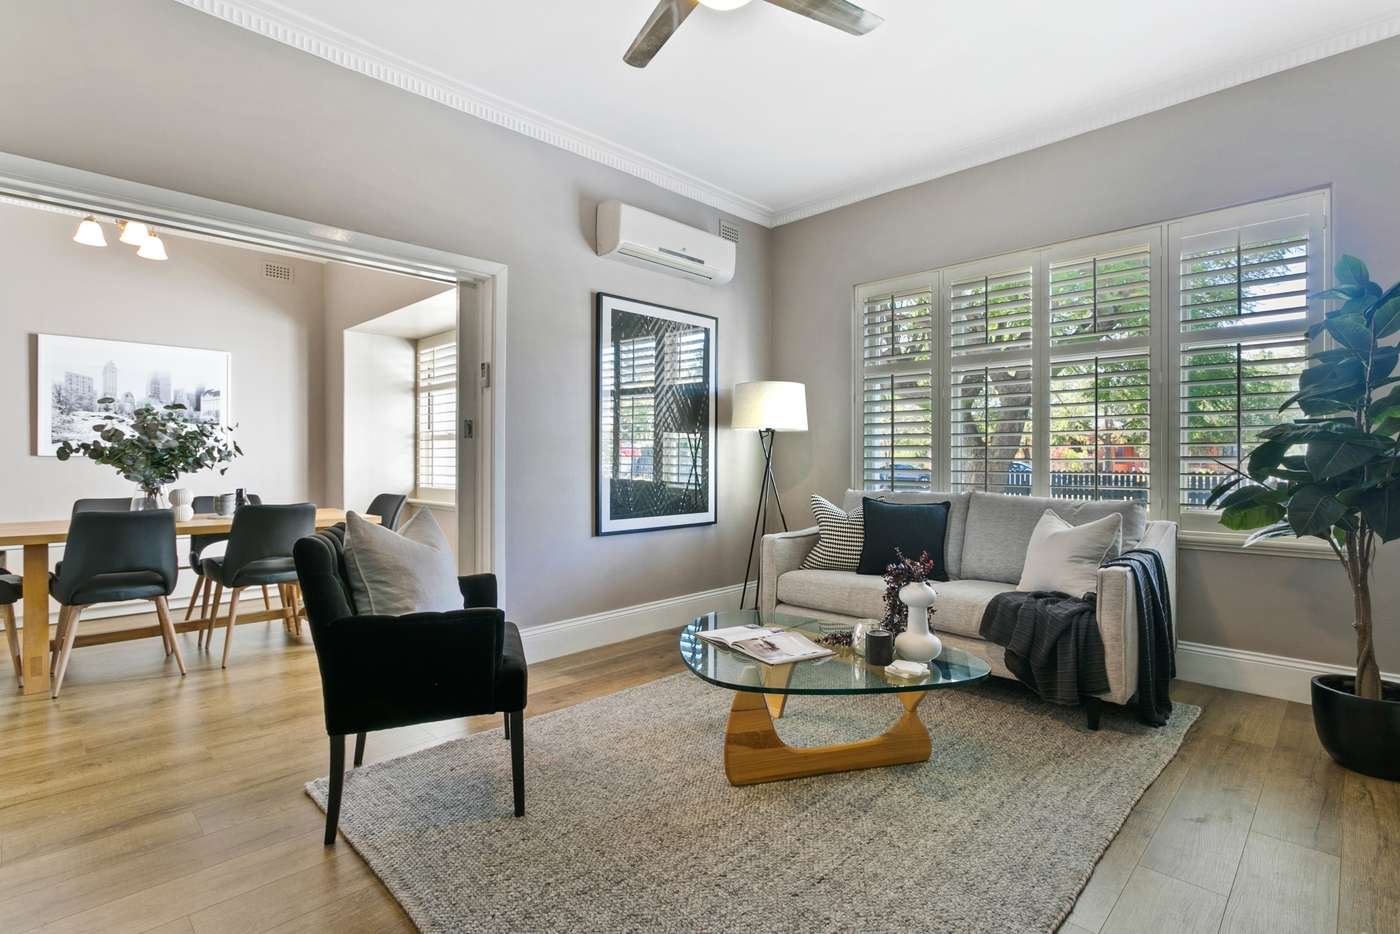 Fifth view of Homely house listing, 12 Salisbury Crescent, Colonel Light Gardens SA 5041